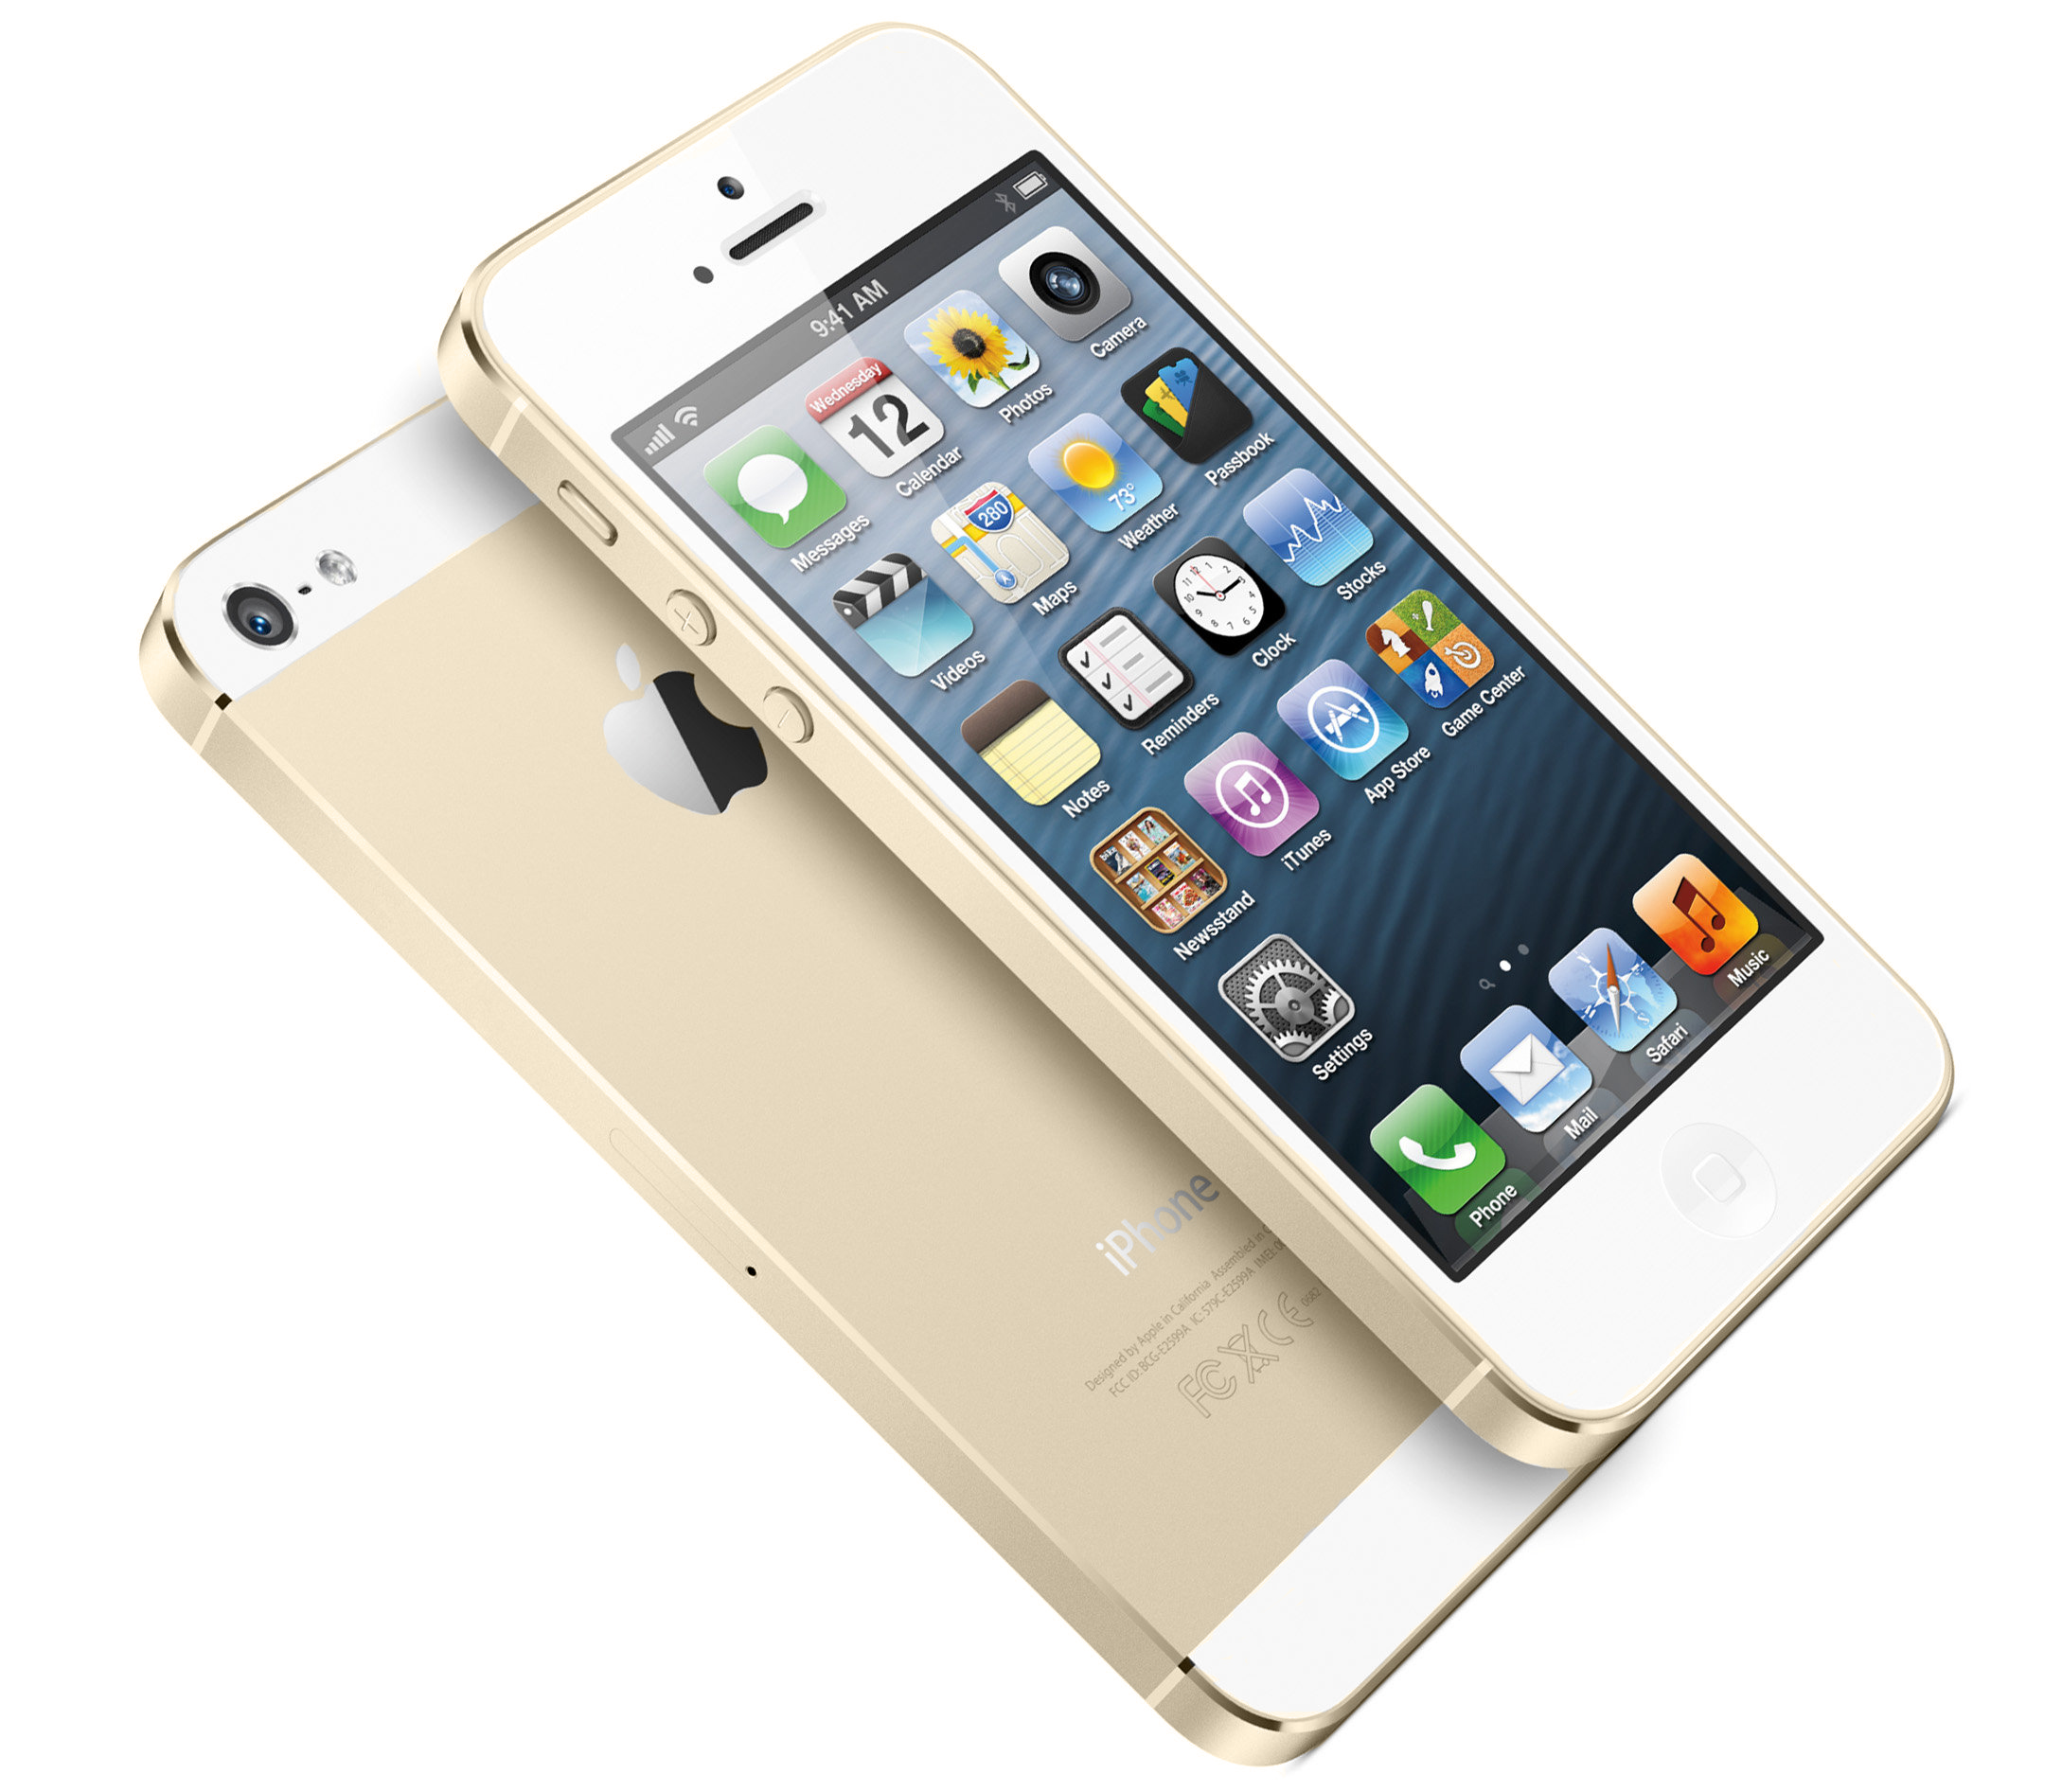 apple iphone 5s 16gb gold 4g lte smart phone tmobile good condition used cell phones cheap. Black Bedroom Furniture Sets. Home Design Ideas